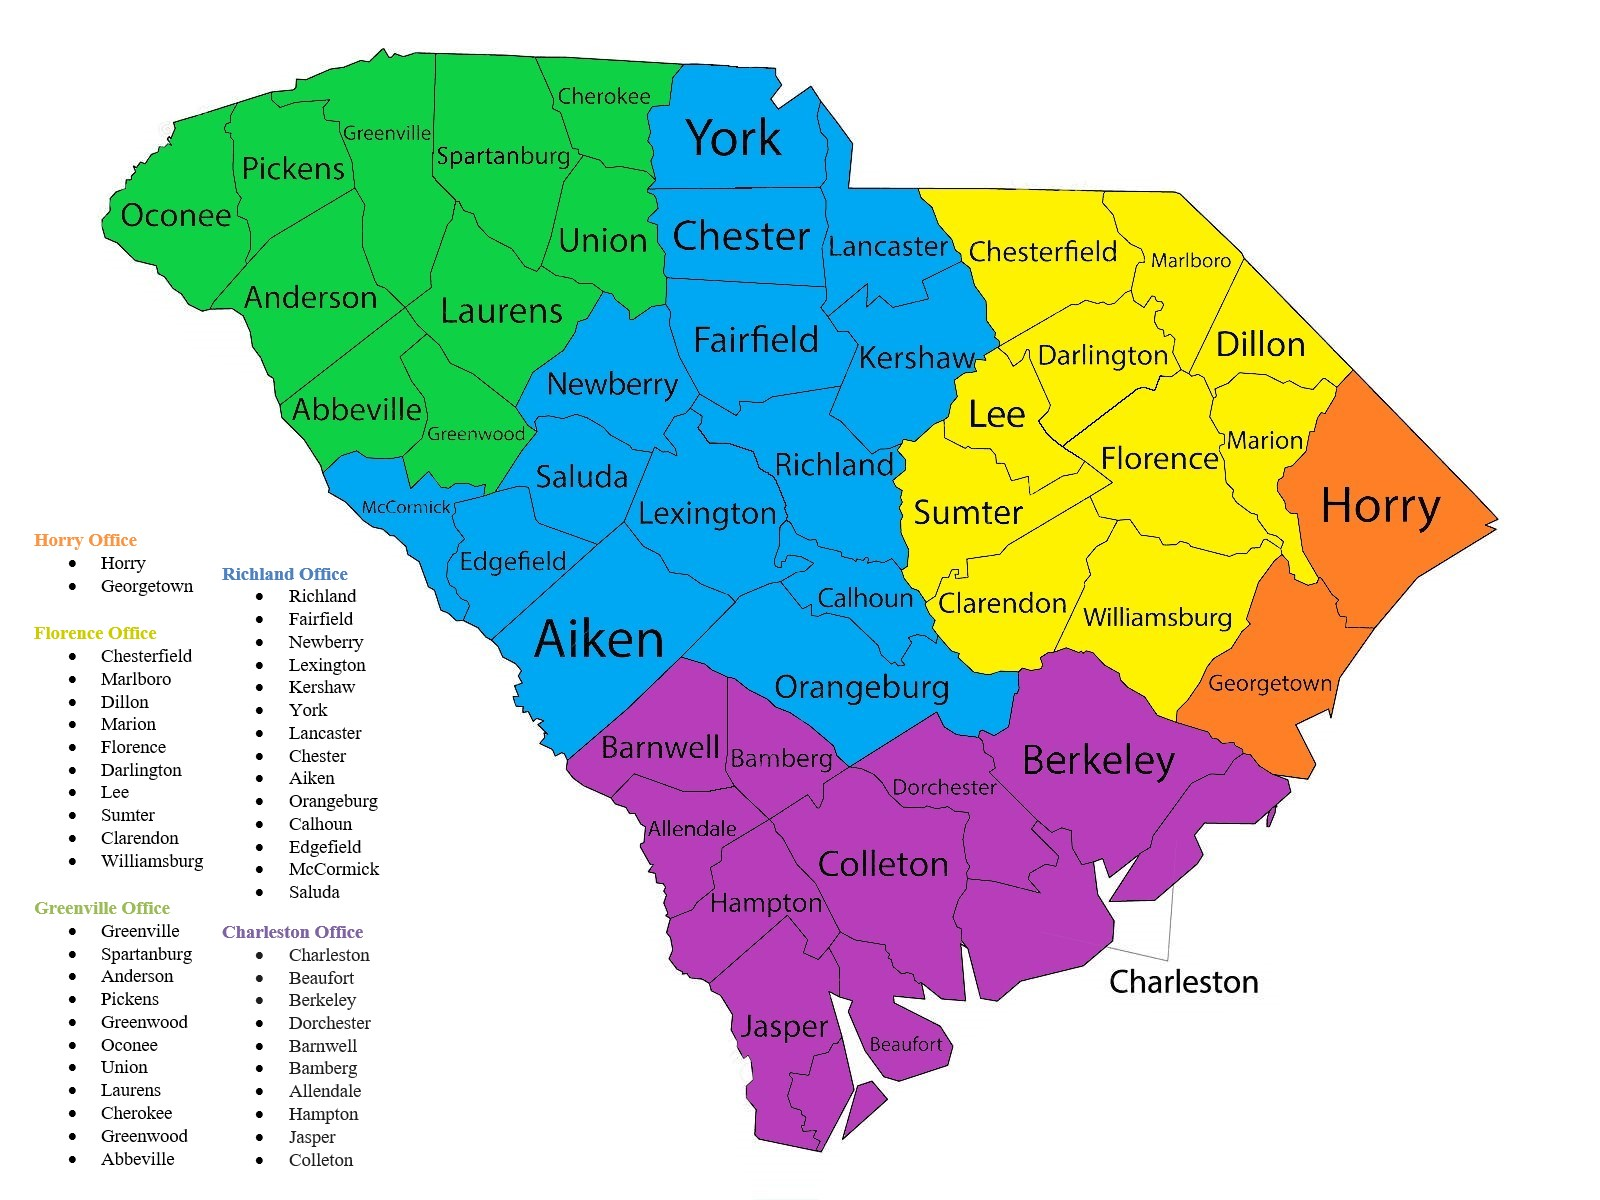 Youth Behavioral Services Locations in South Carolina